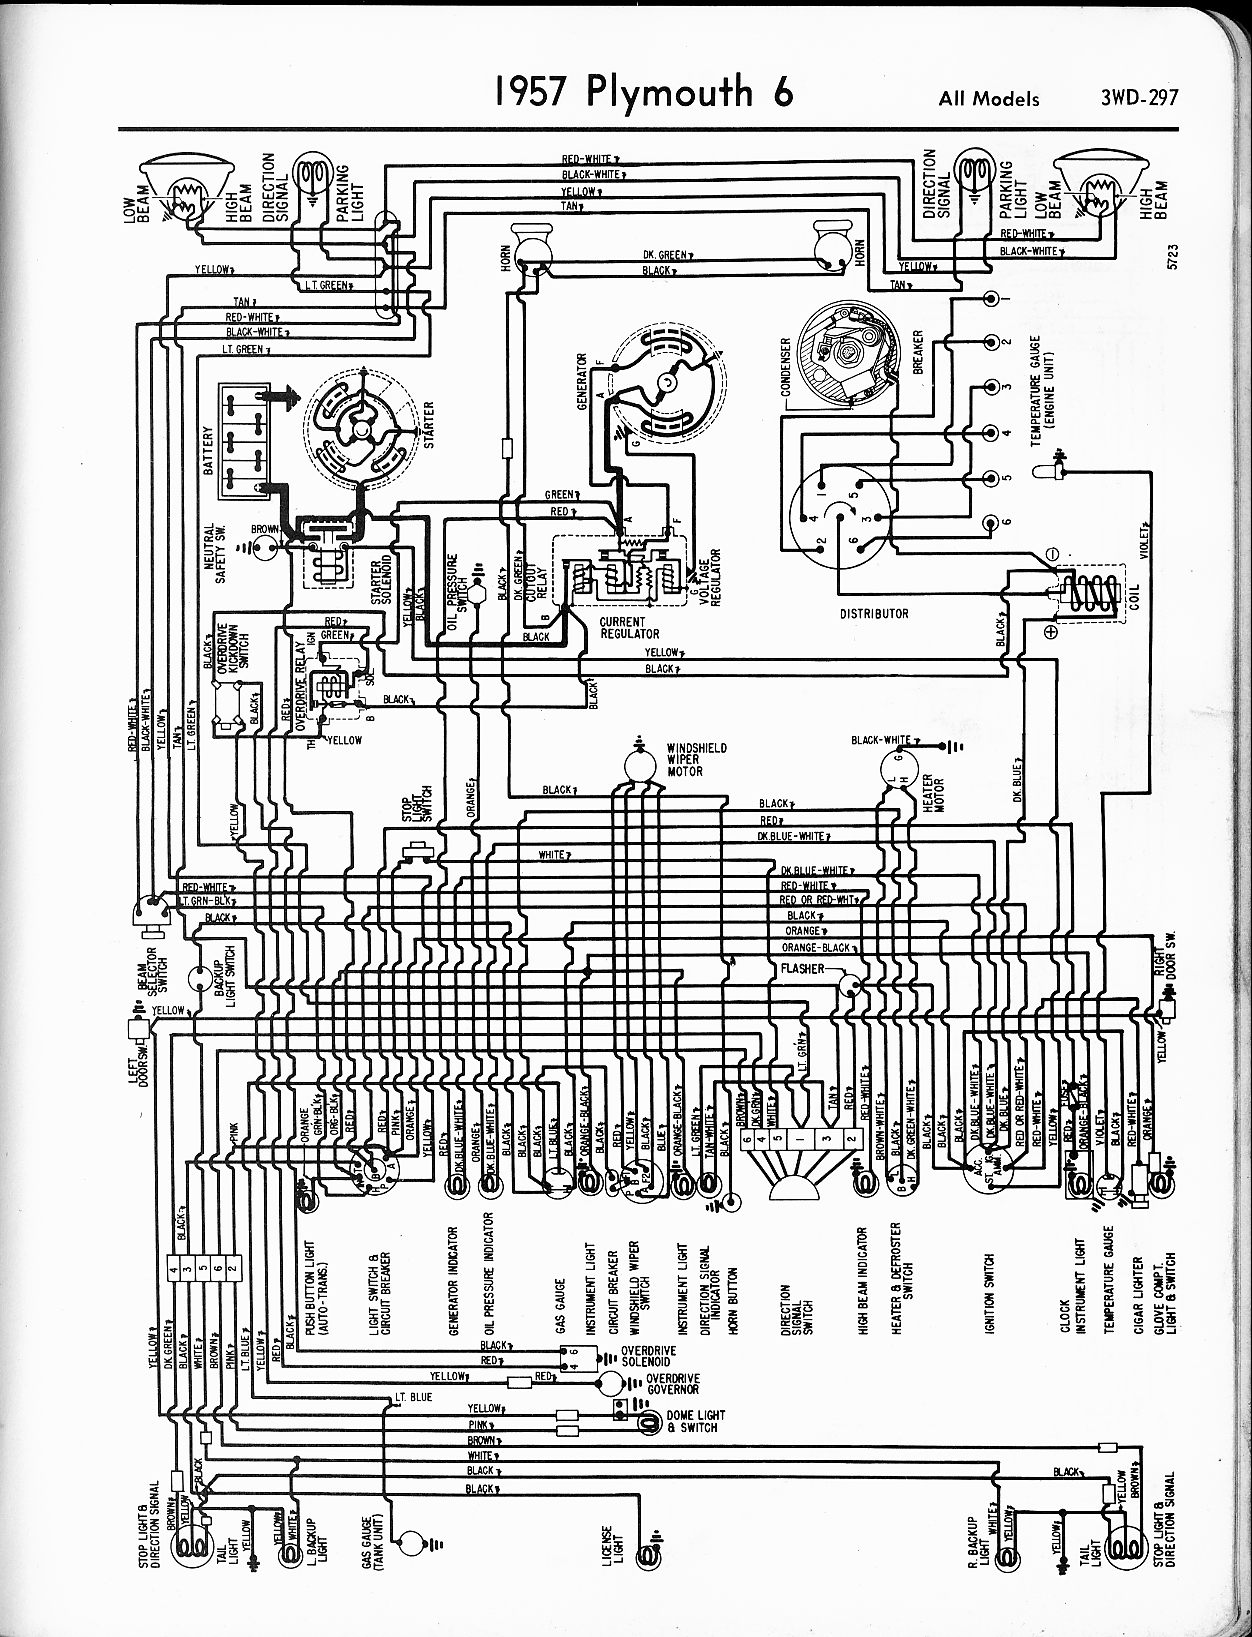 MWire5765 297 1956 1965 plymouth wiring the old car manual project 1971 cuda air conditioning wiring diagram at nearapp.co